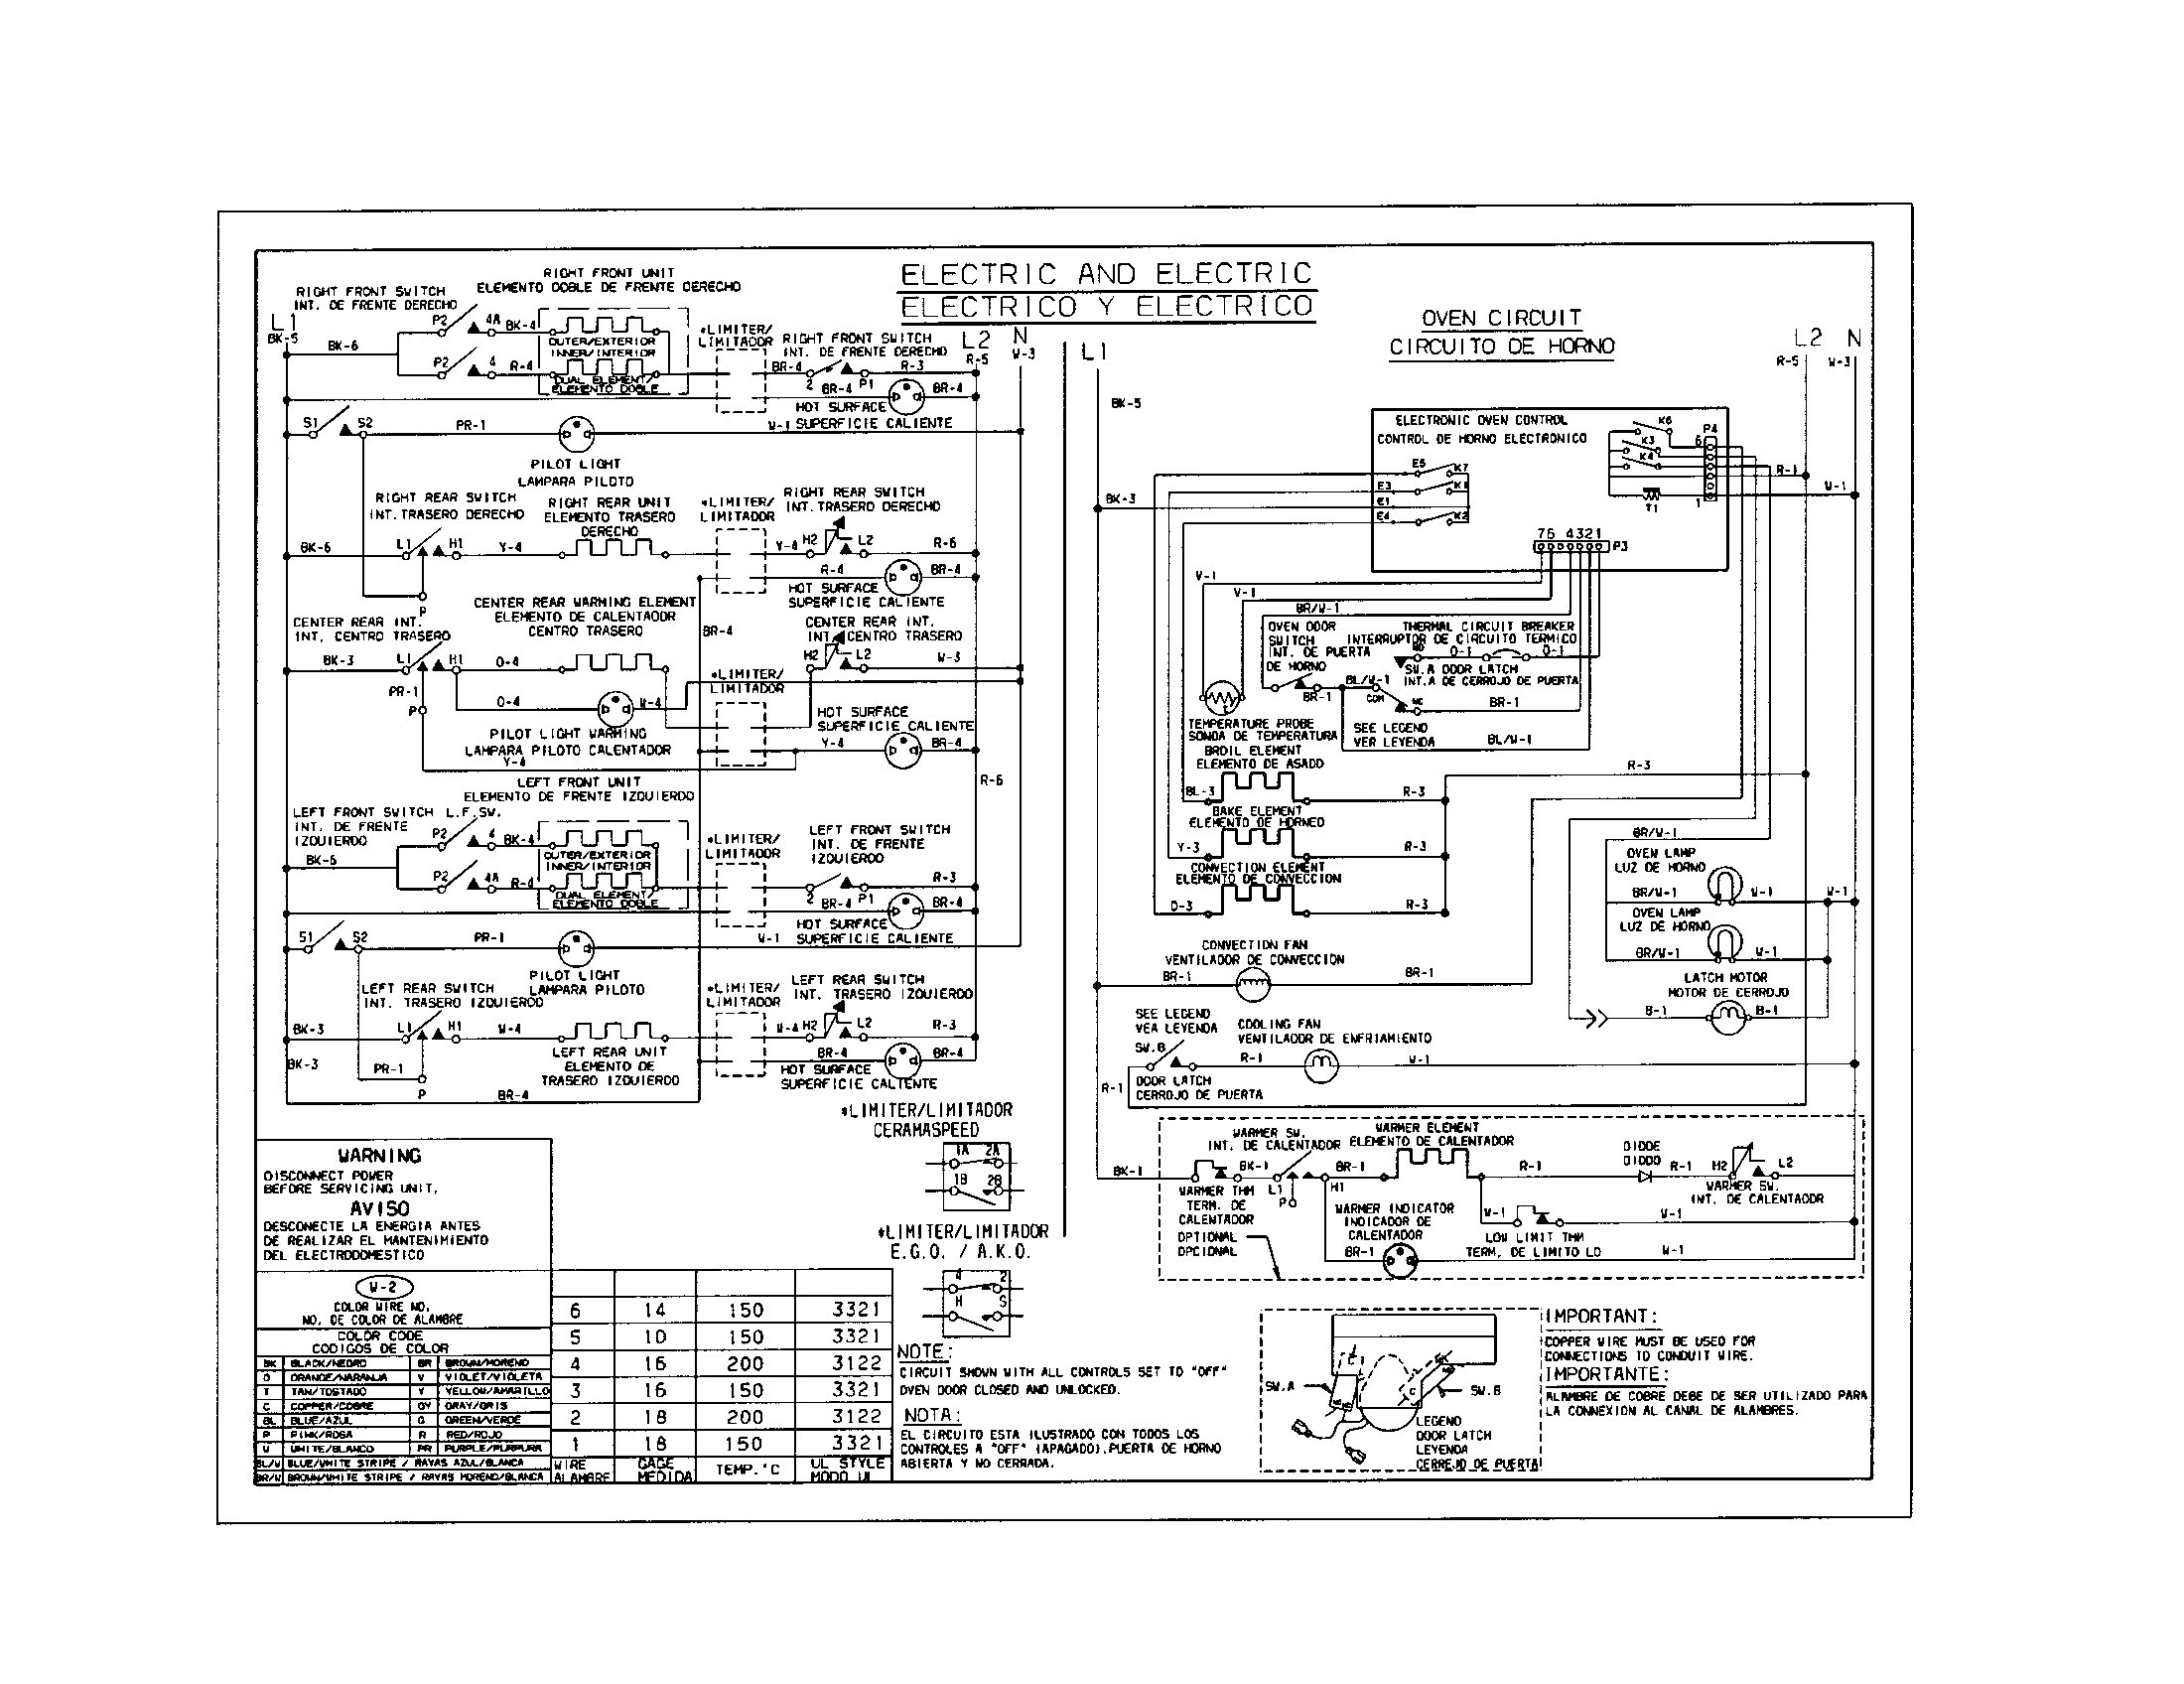 Wiring Diagram For Ge Oven Archive Of Automotive Microwave Kenmore Just Data Rh Ag Skiphire Co Uk